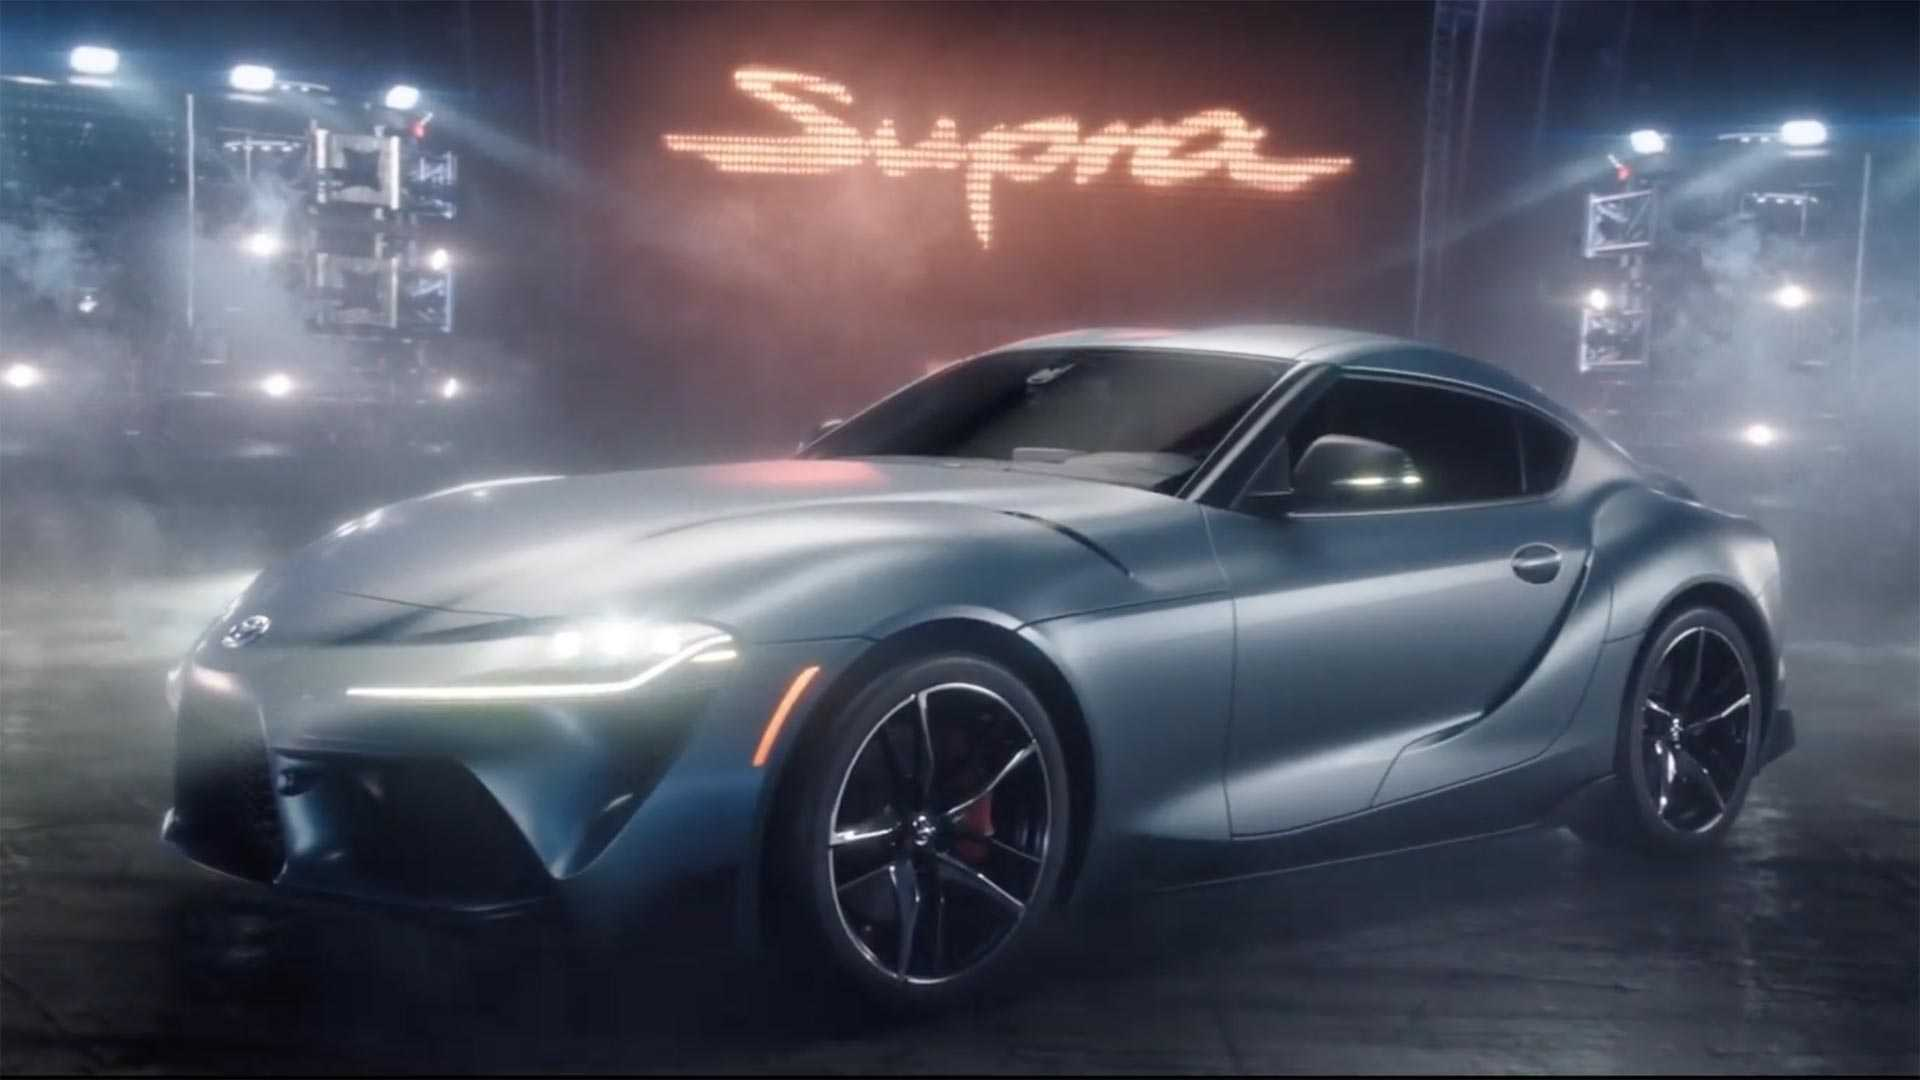 Best 2020 Super Bowl Commercials Watch 2020 Toyota Supra's Pinball Themed Super Bowl Ad